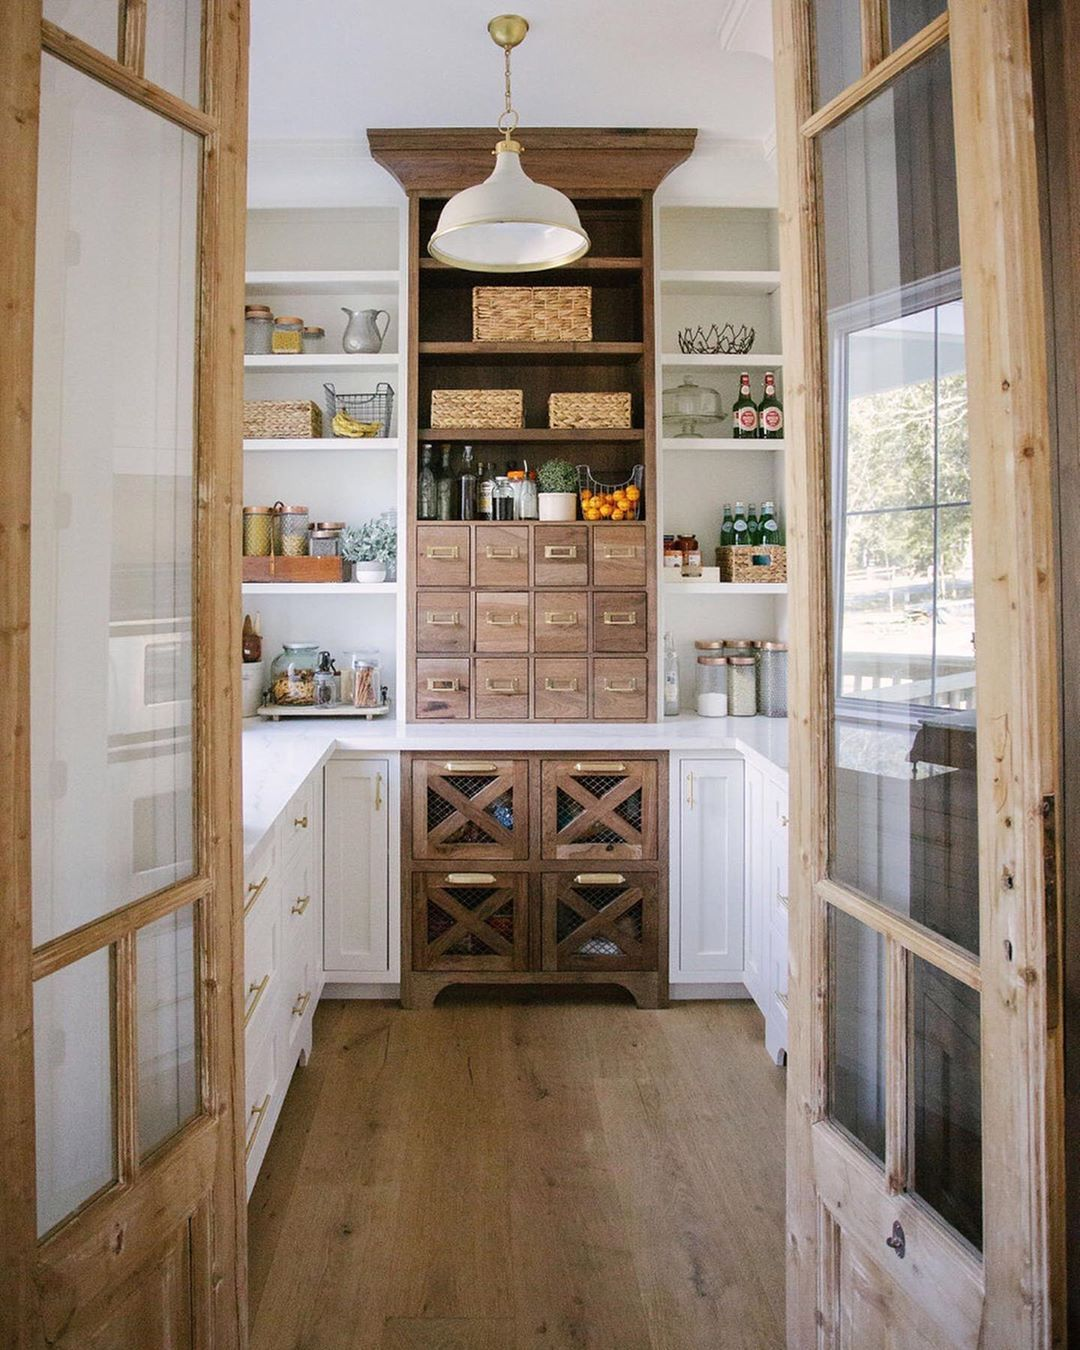 A Simplified Home for Spring: Tips on Getting Organized from Blogger Emily Ley – Cottage Journal